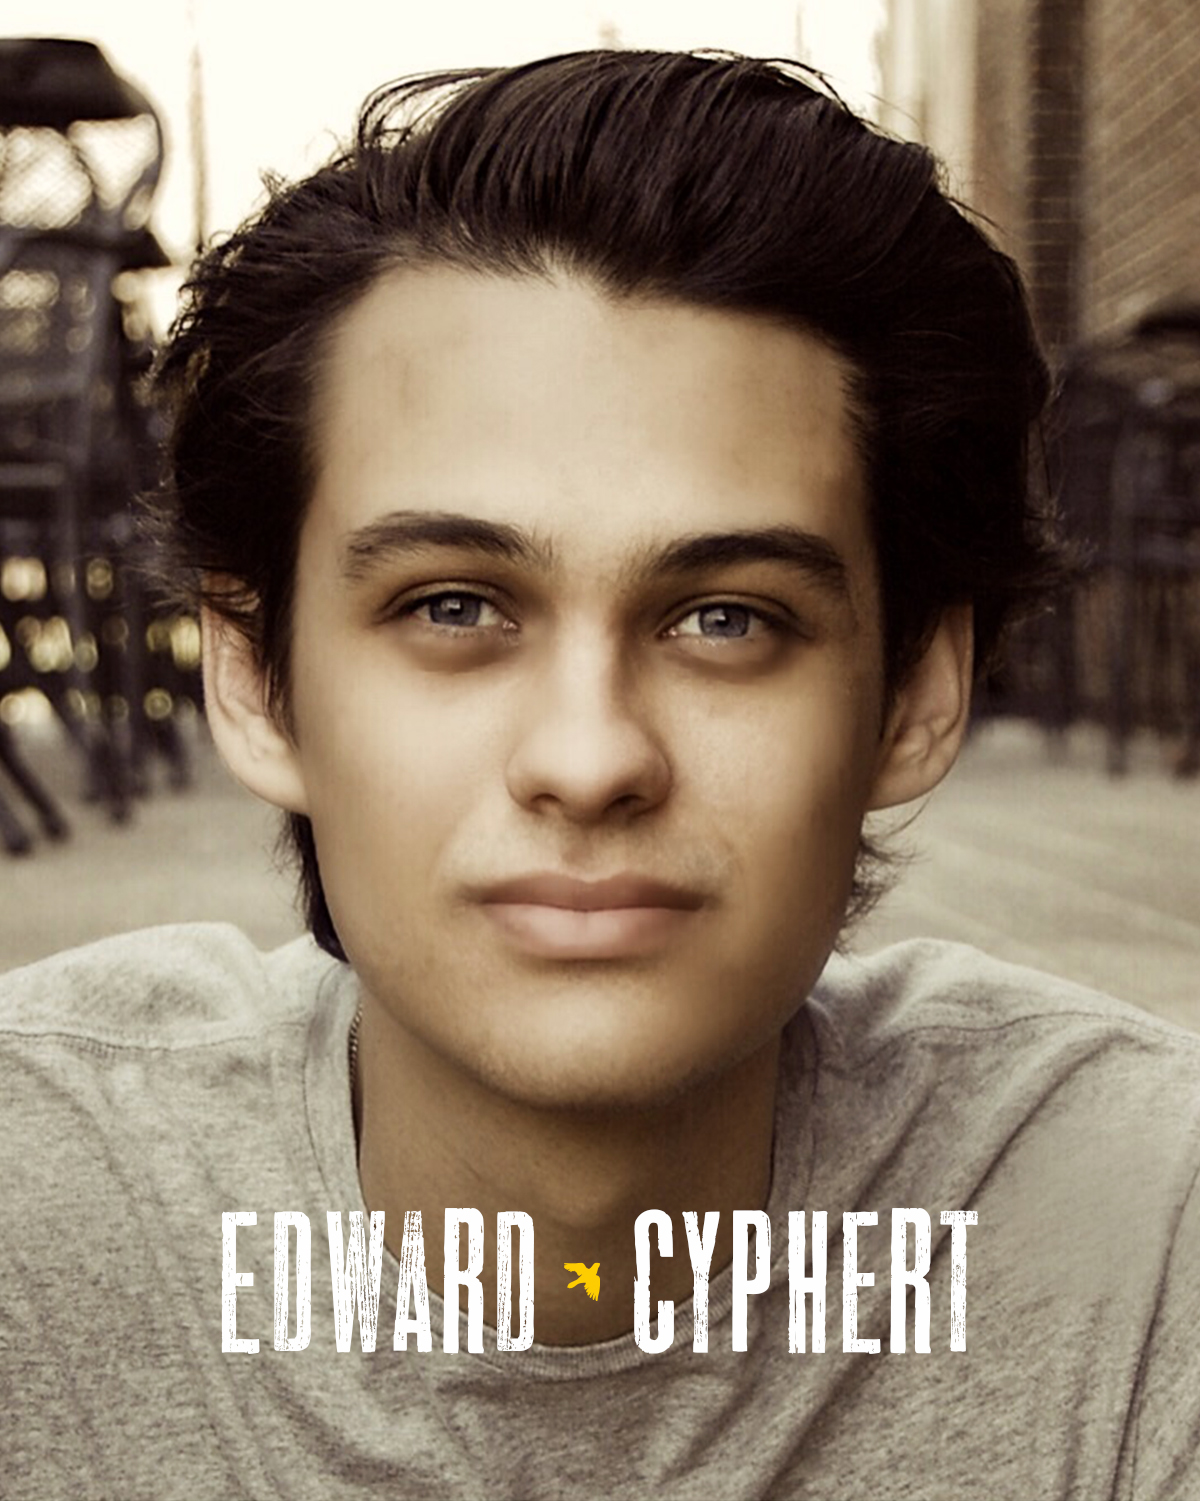 EDWARD CYPHERT  (Ensemble) is a Morgantown native and a senior at West Virginia University pursuing a Bachelor of Fine Arts in Musical Theater. Regional:  A Hatful of Rain  (WVPT). Collegiate:  You Can't Take it With You ,  The Diary of Anne Frank ,  Spring Awakening ,  The Nether ,  Assassins . He is currently filming  The Pan-American Melting Pot,  an original web series he co-created.  @edwardcyphert  |  @panamericanmeltingpot